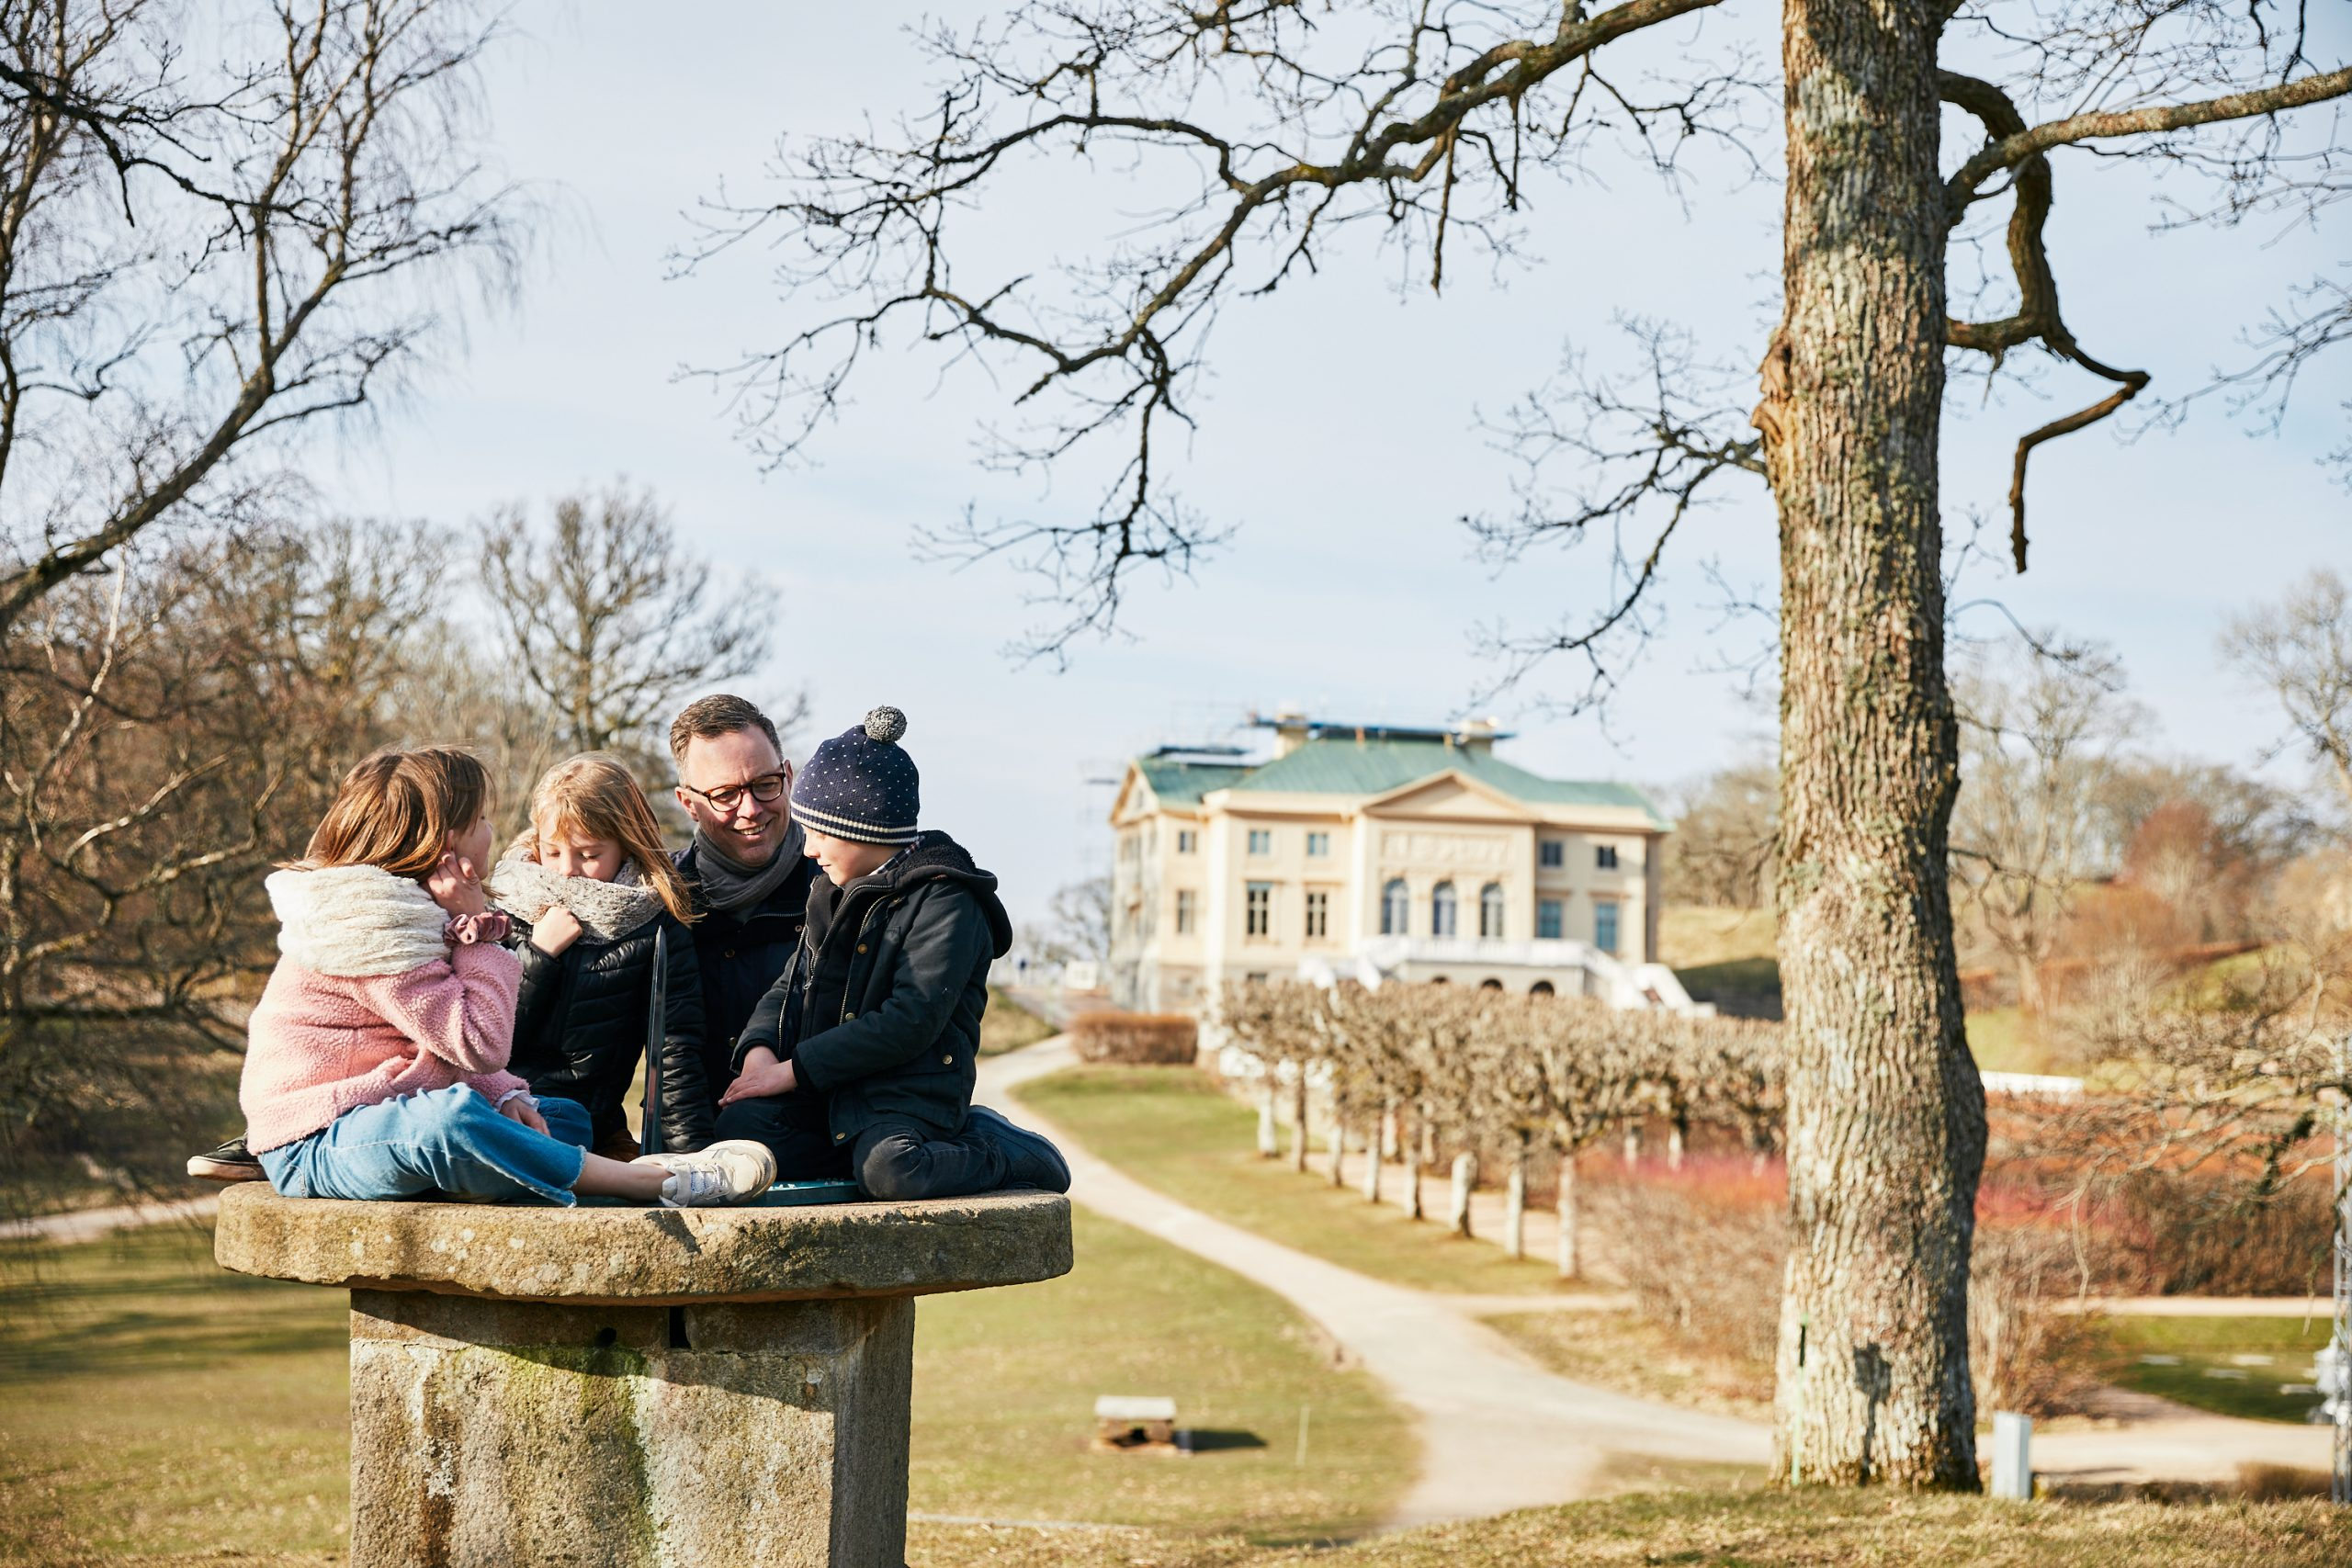 Fil:Gunnebo slott nya satisfaction-survey.net Wikipedia